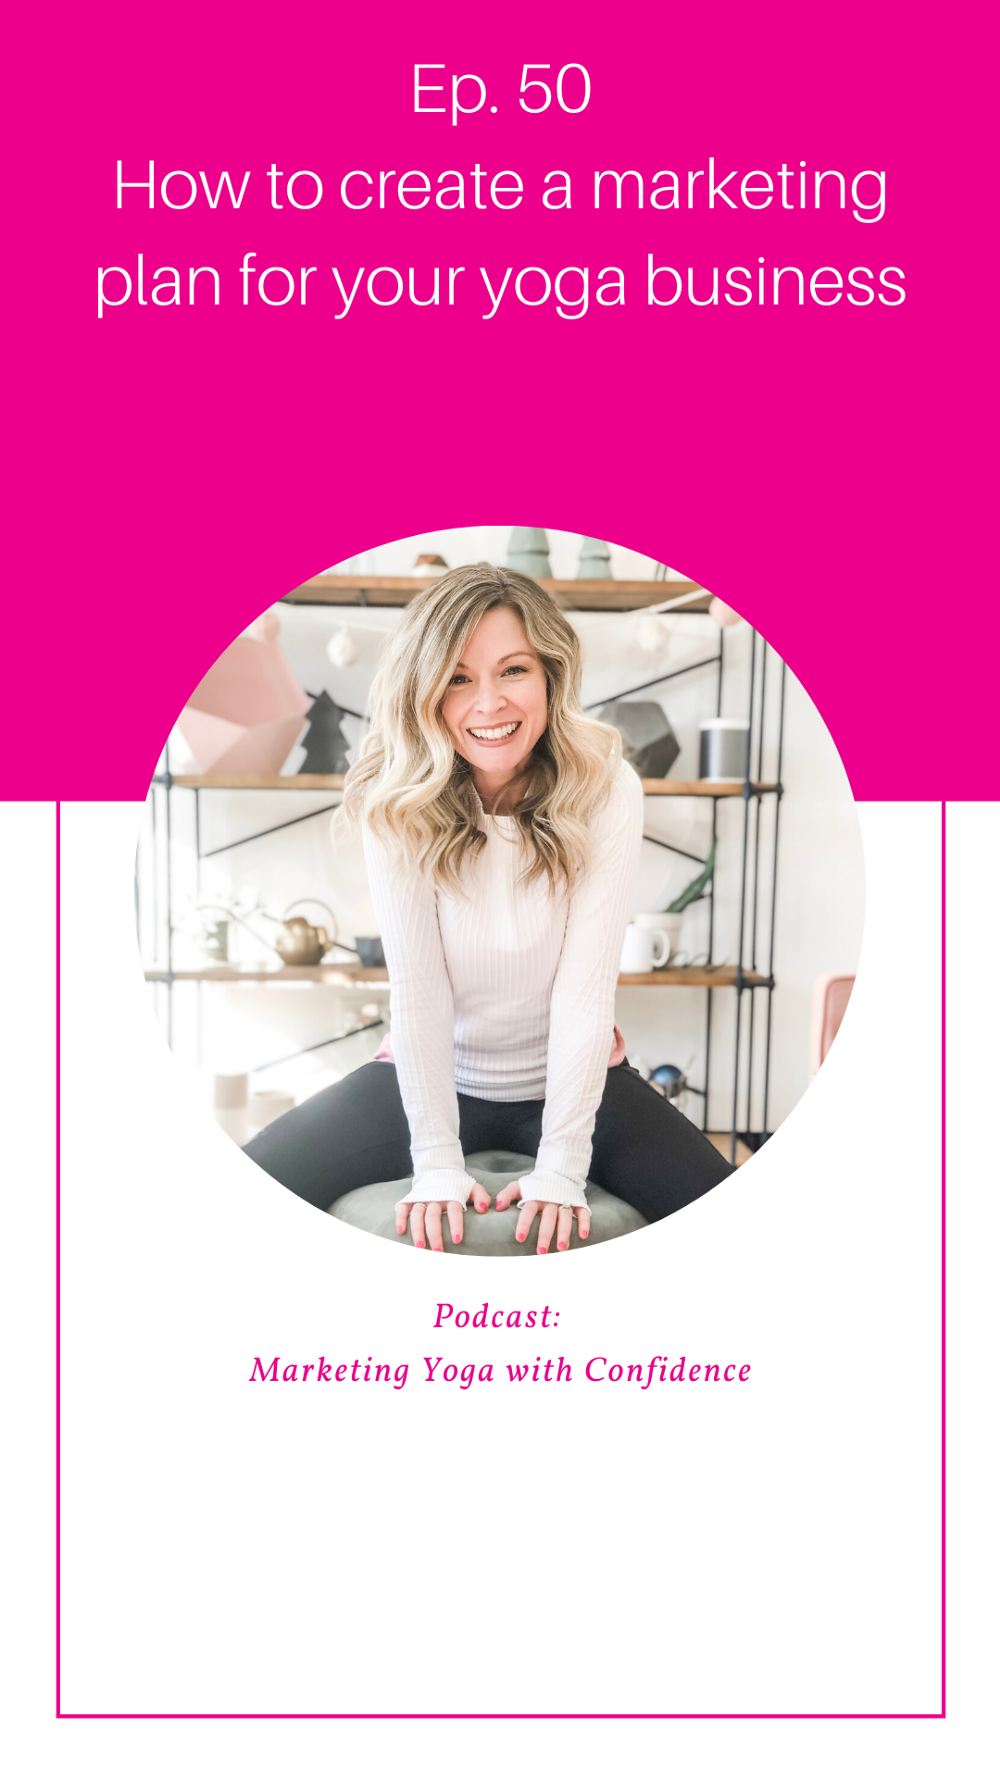 How to create a marketing plan for your yoga business